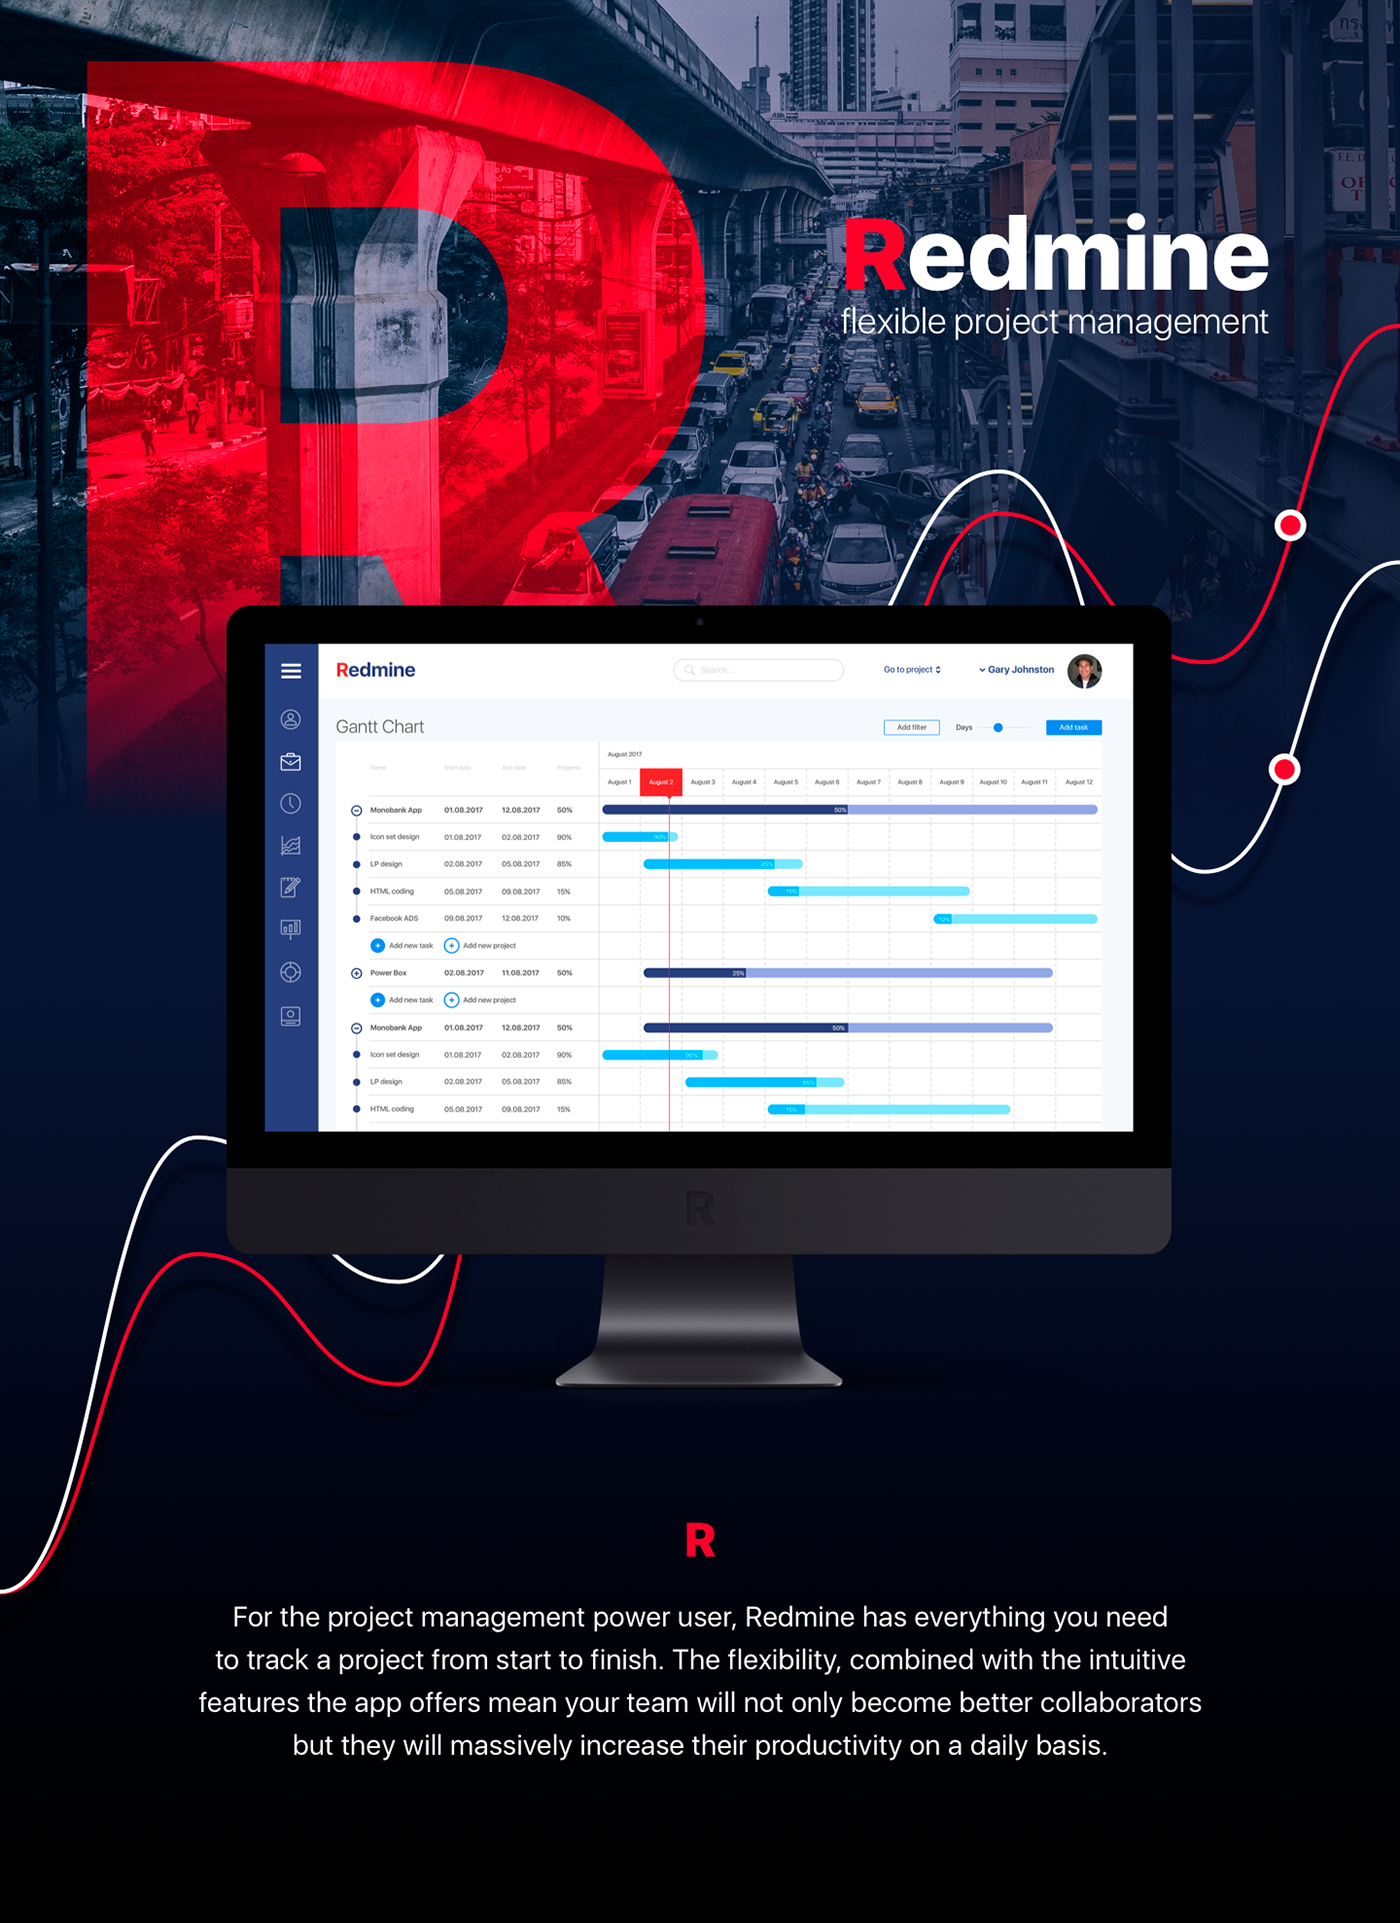 Redmine-project management  Redesign concept on Behance